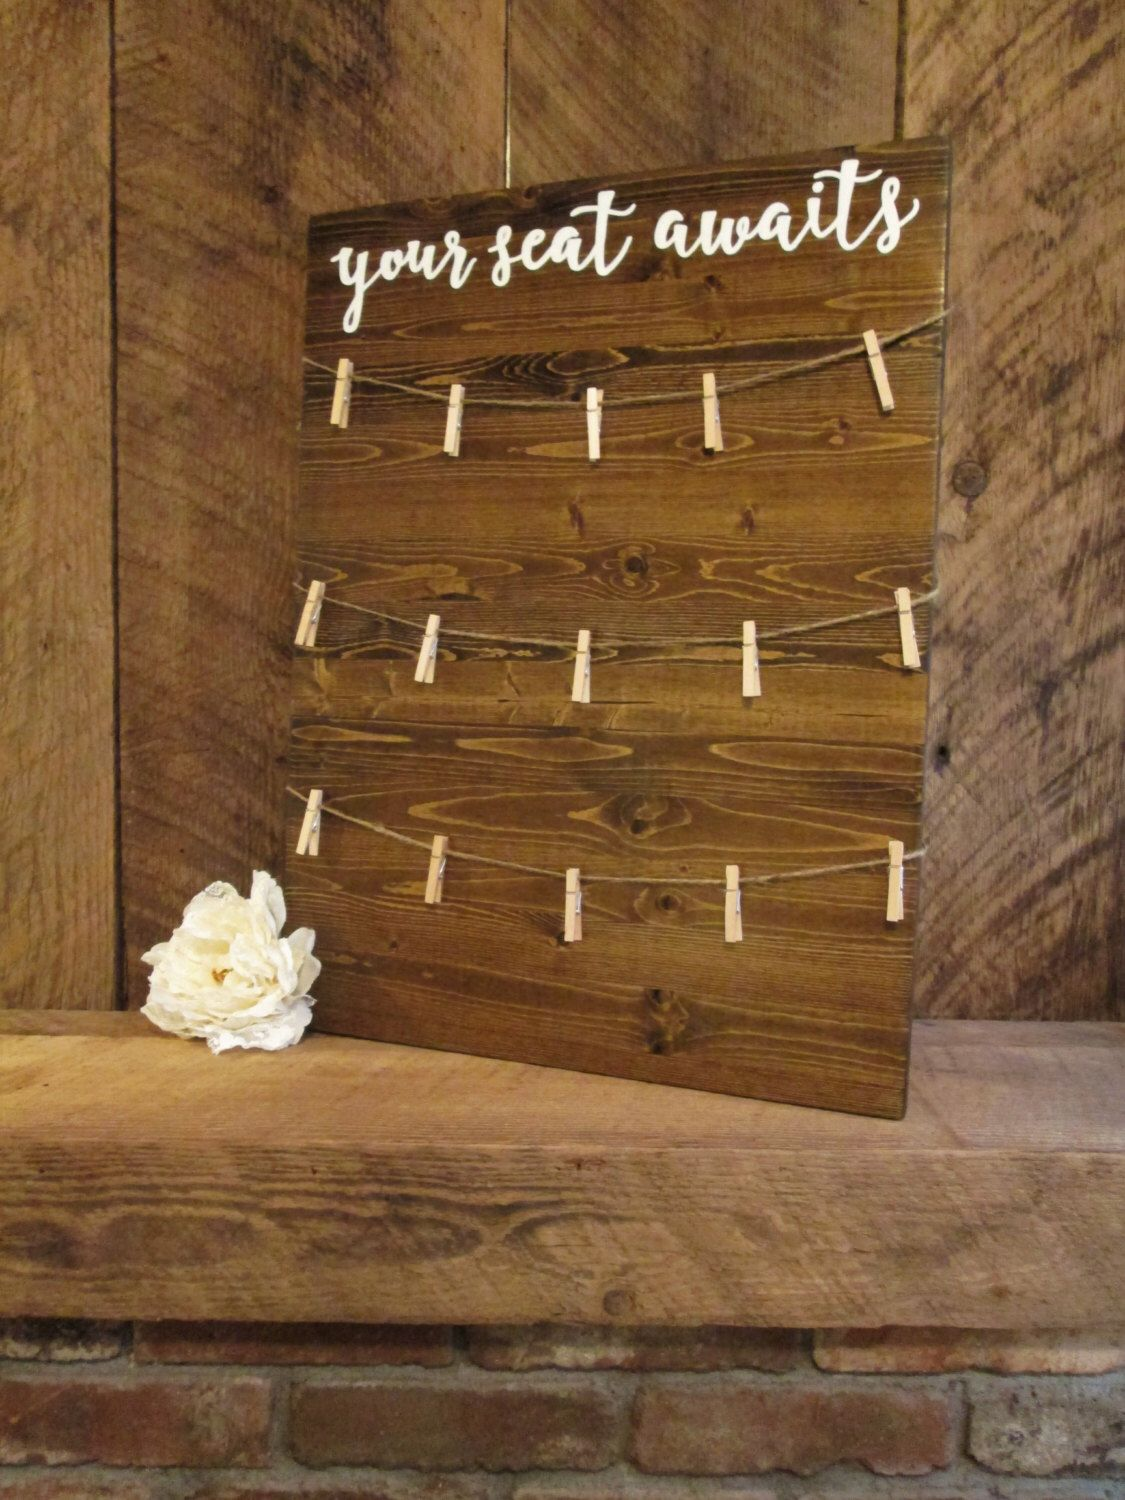 Wedding decorations venue october 2018 Wedding seating chart your seat awaits sign find your seat wood